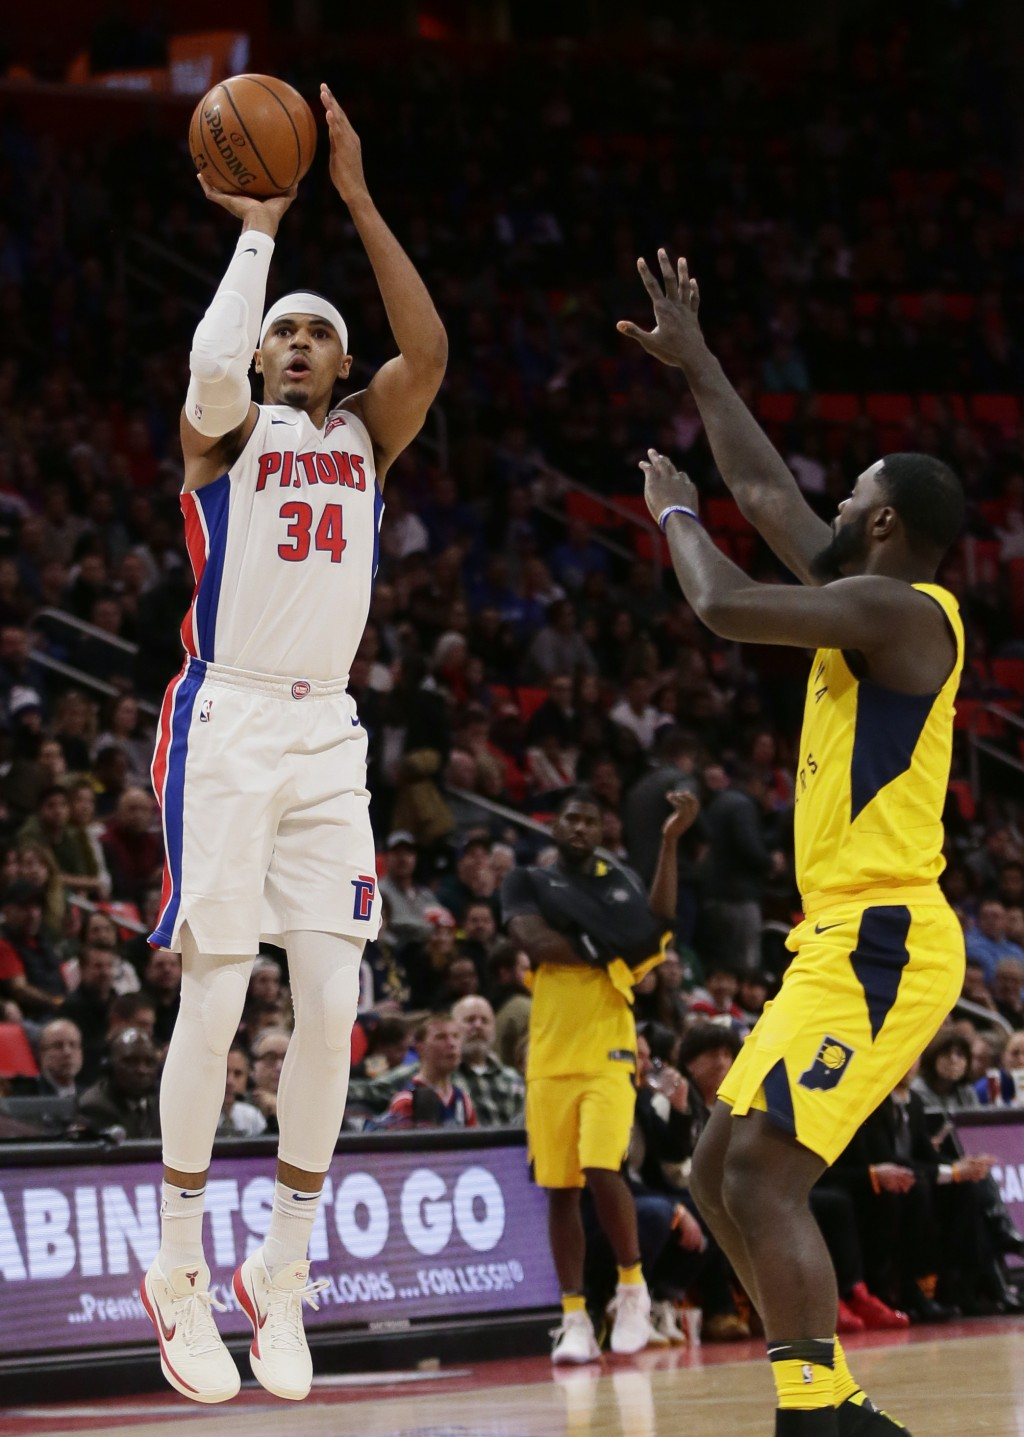 Detroit Pistons forward Tobias Harris (34) takes a shot against Indiana Pacers guard Lance Stephenson during the first half of an NBA basketball game,...